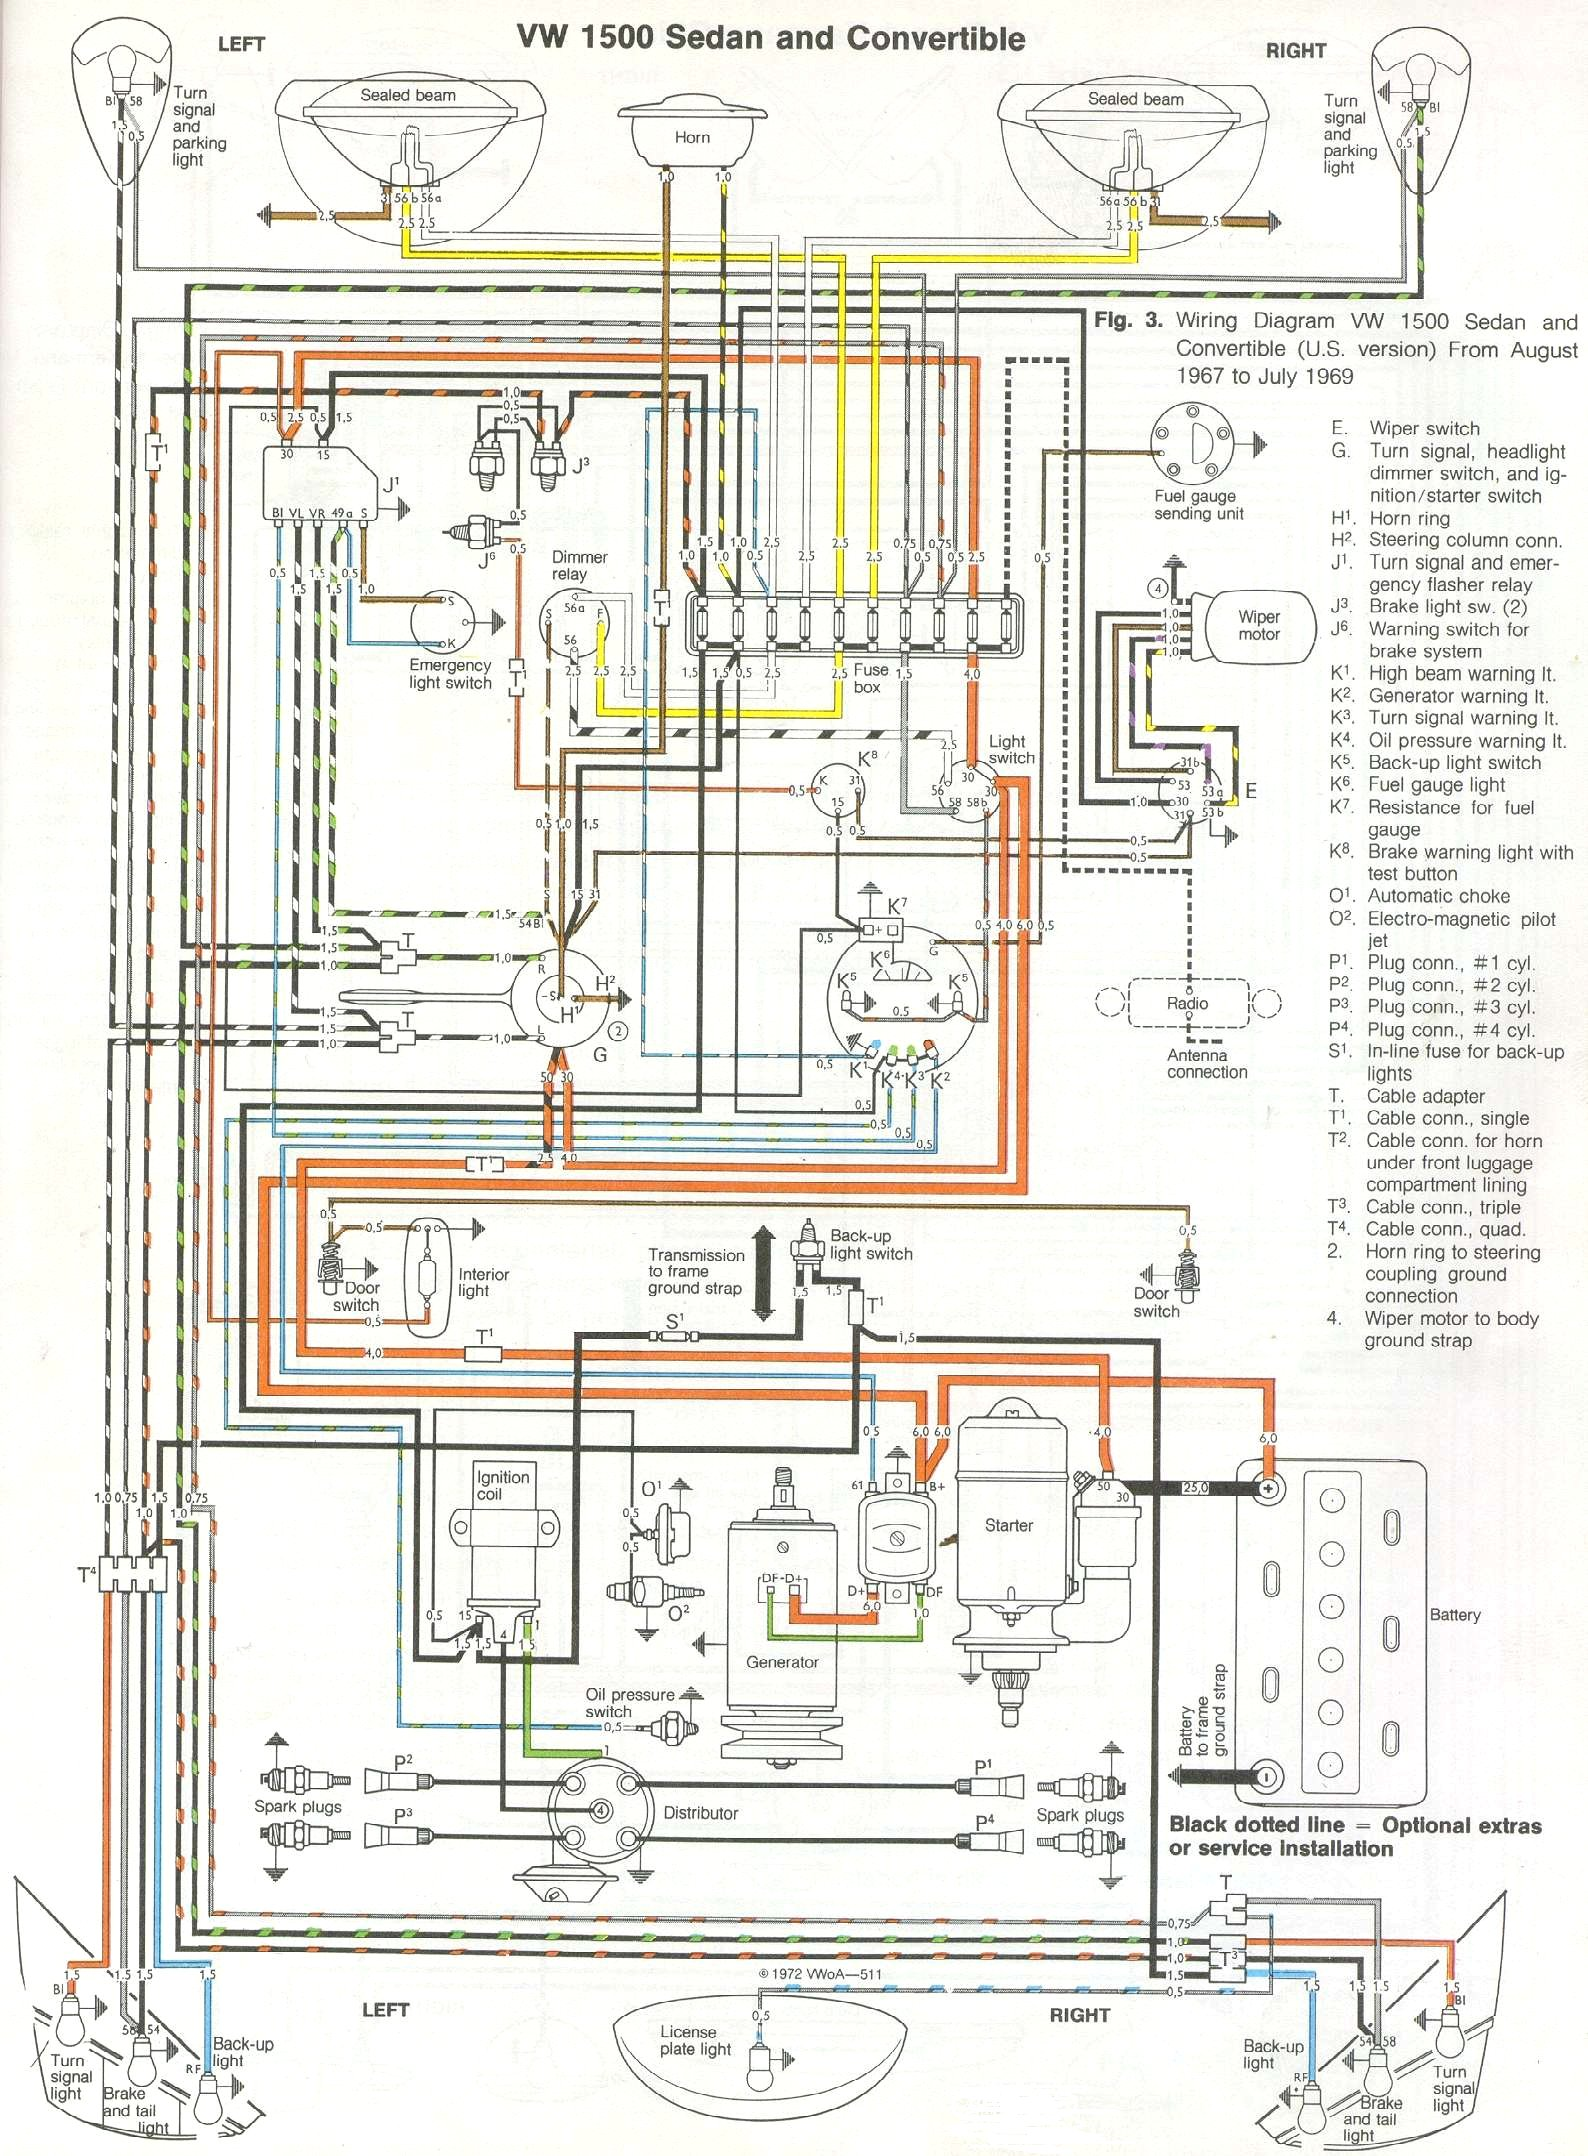 bug_6869 1969 71 beetle wiring diagram thegoldenbug com 1970 vw bug wiring diagram at soozxer.org